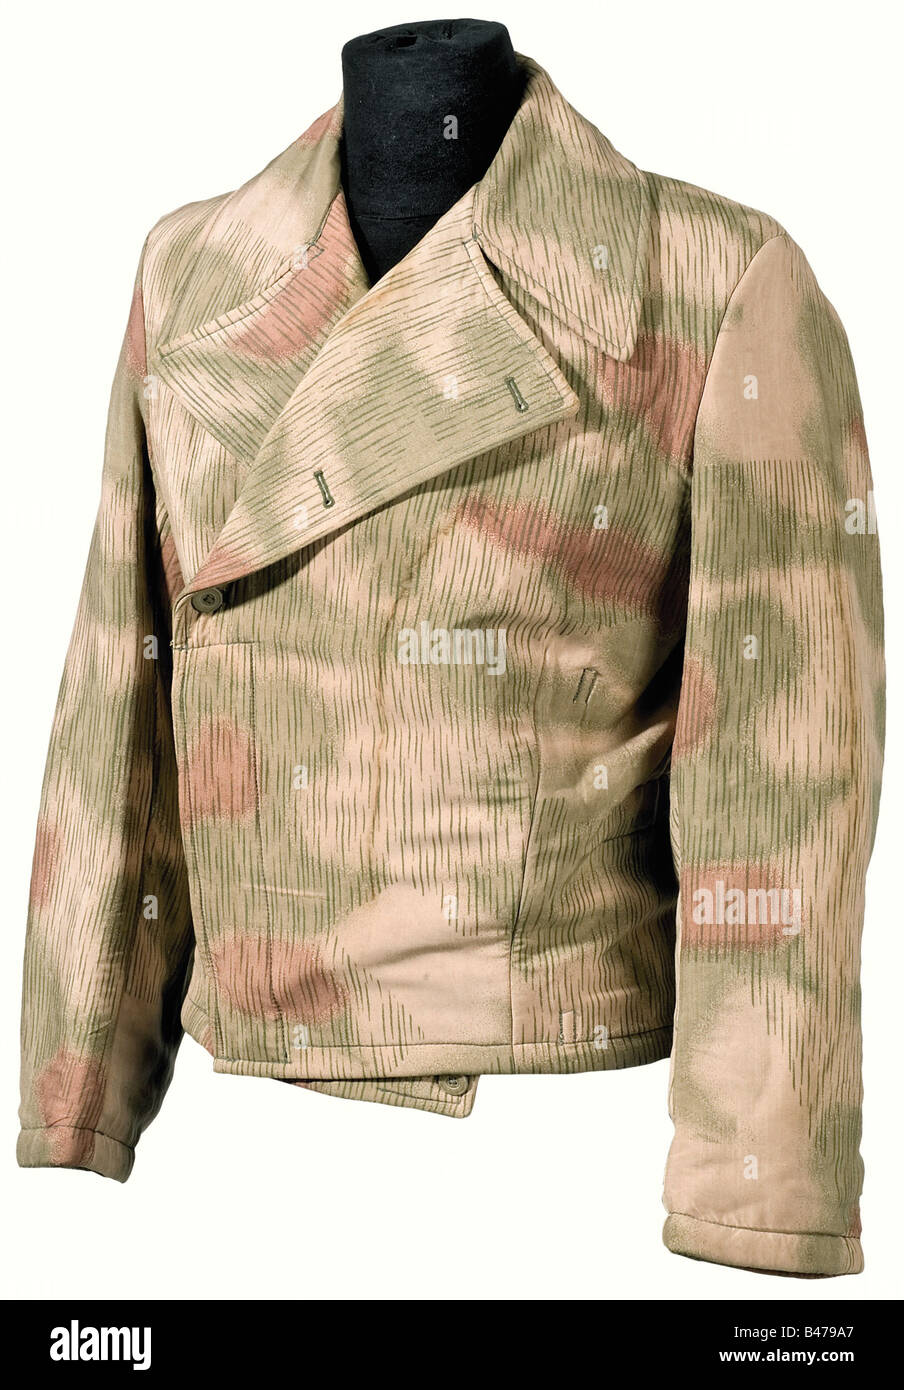 A camouflage jacket, in the special uniform style for tank troops. Swamp camouflage version, with white interior, - Stock Image